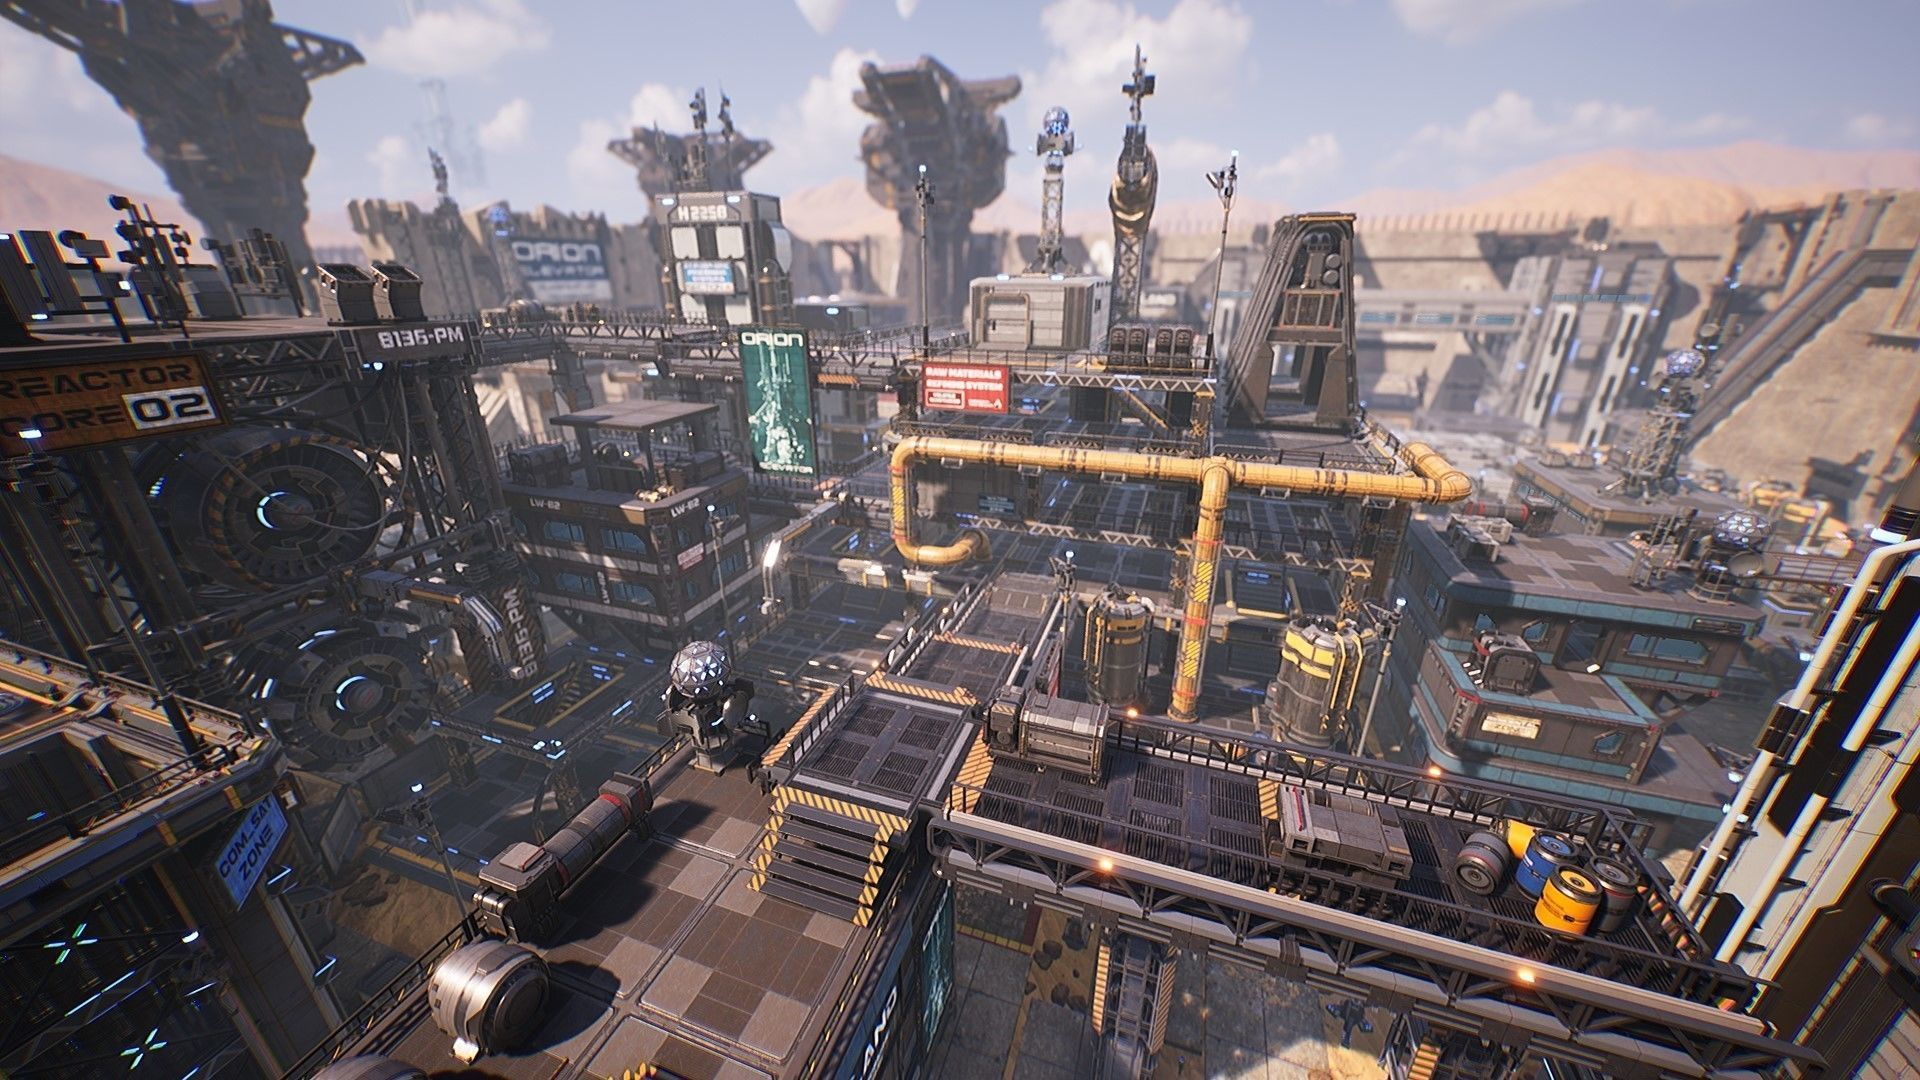 Sci-Fi Industrial Base - Unreal project